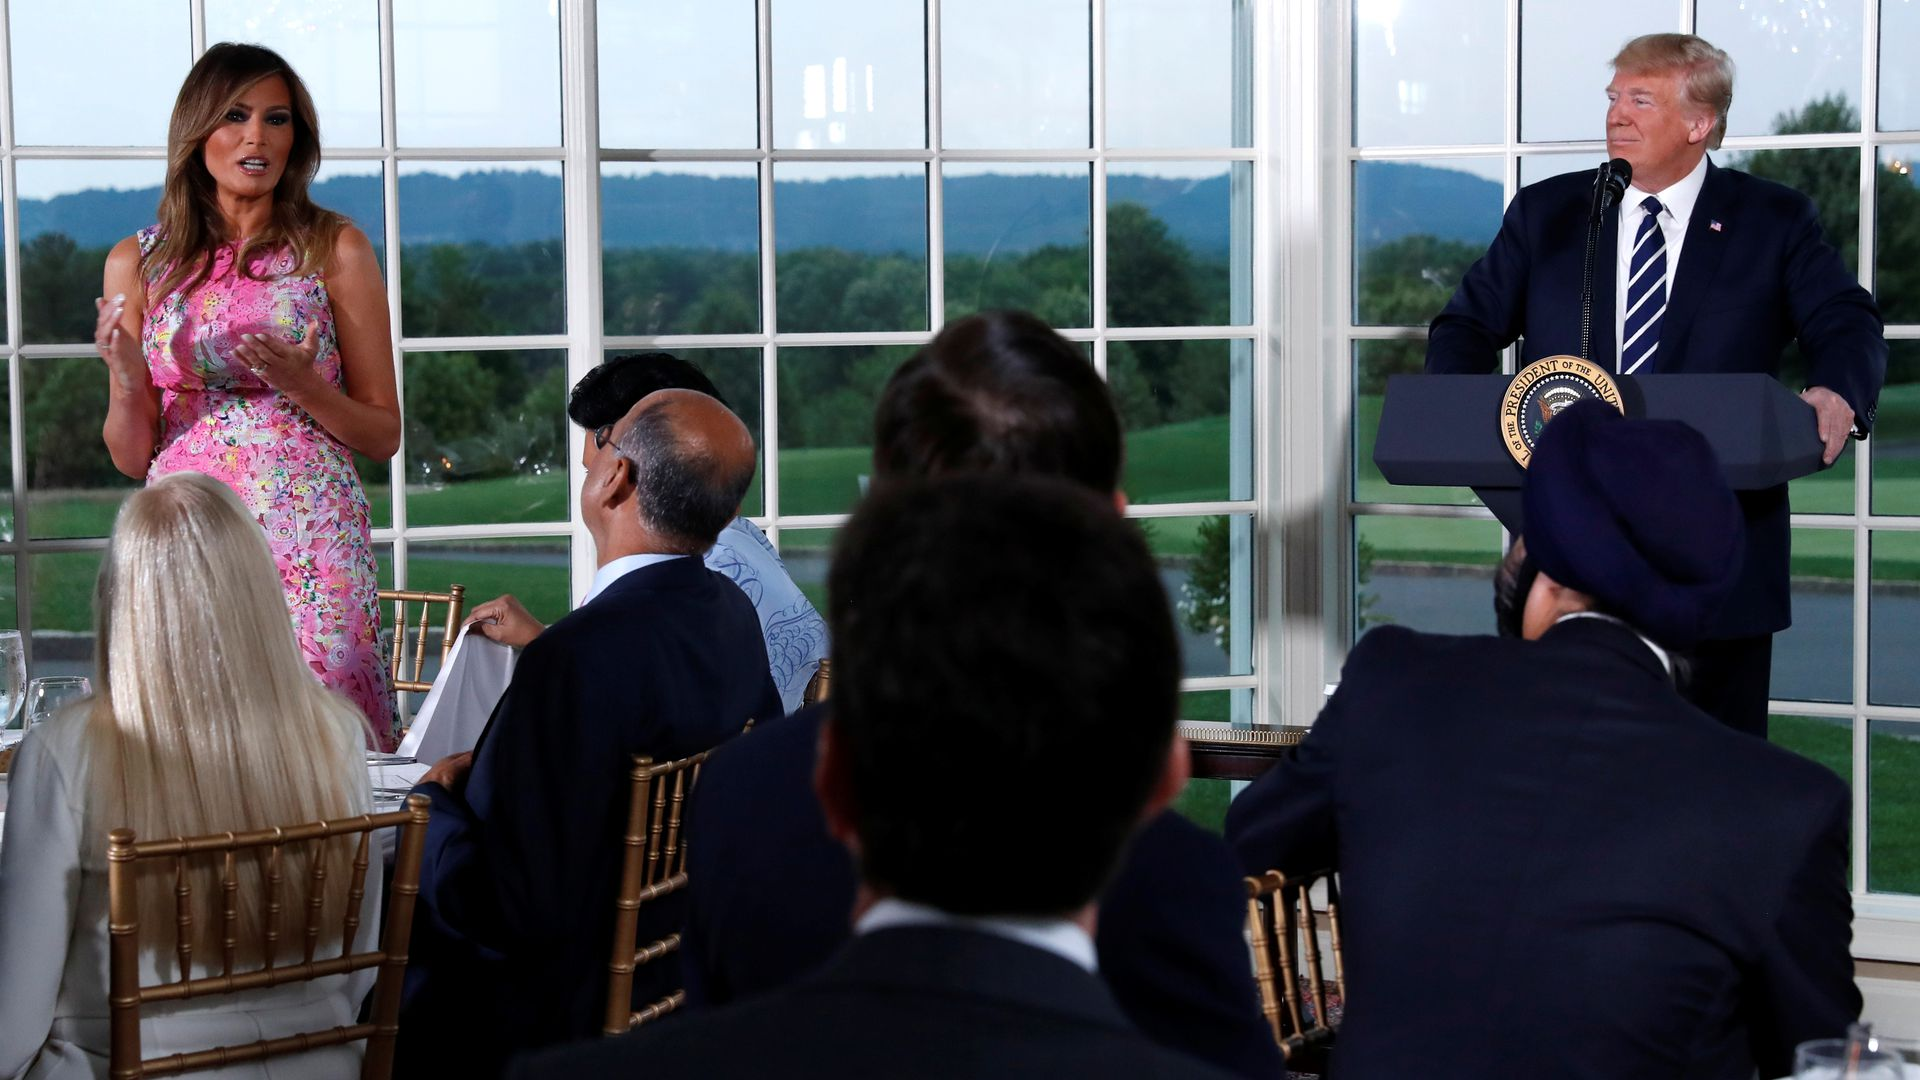 Donald Trump and Melania Trump are pictured here speaking in front of seated guests at a dinner, with several windows facing a golf course behind them.